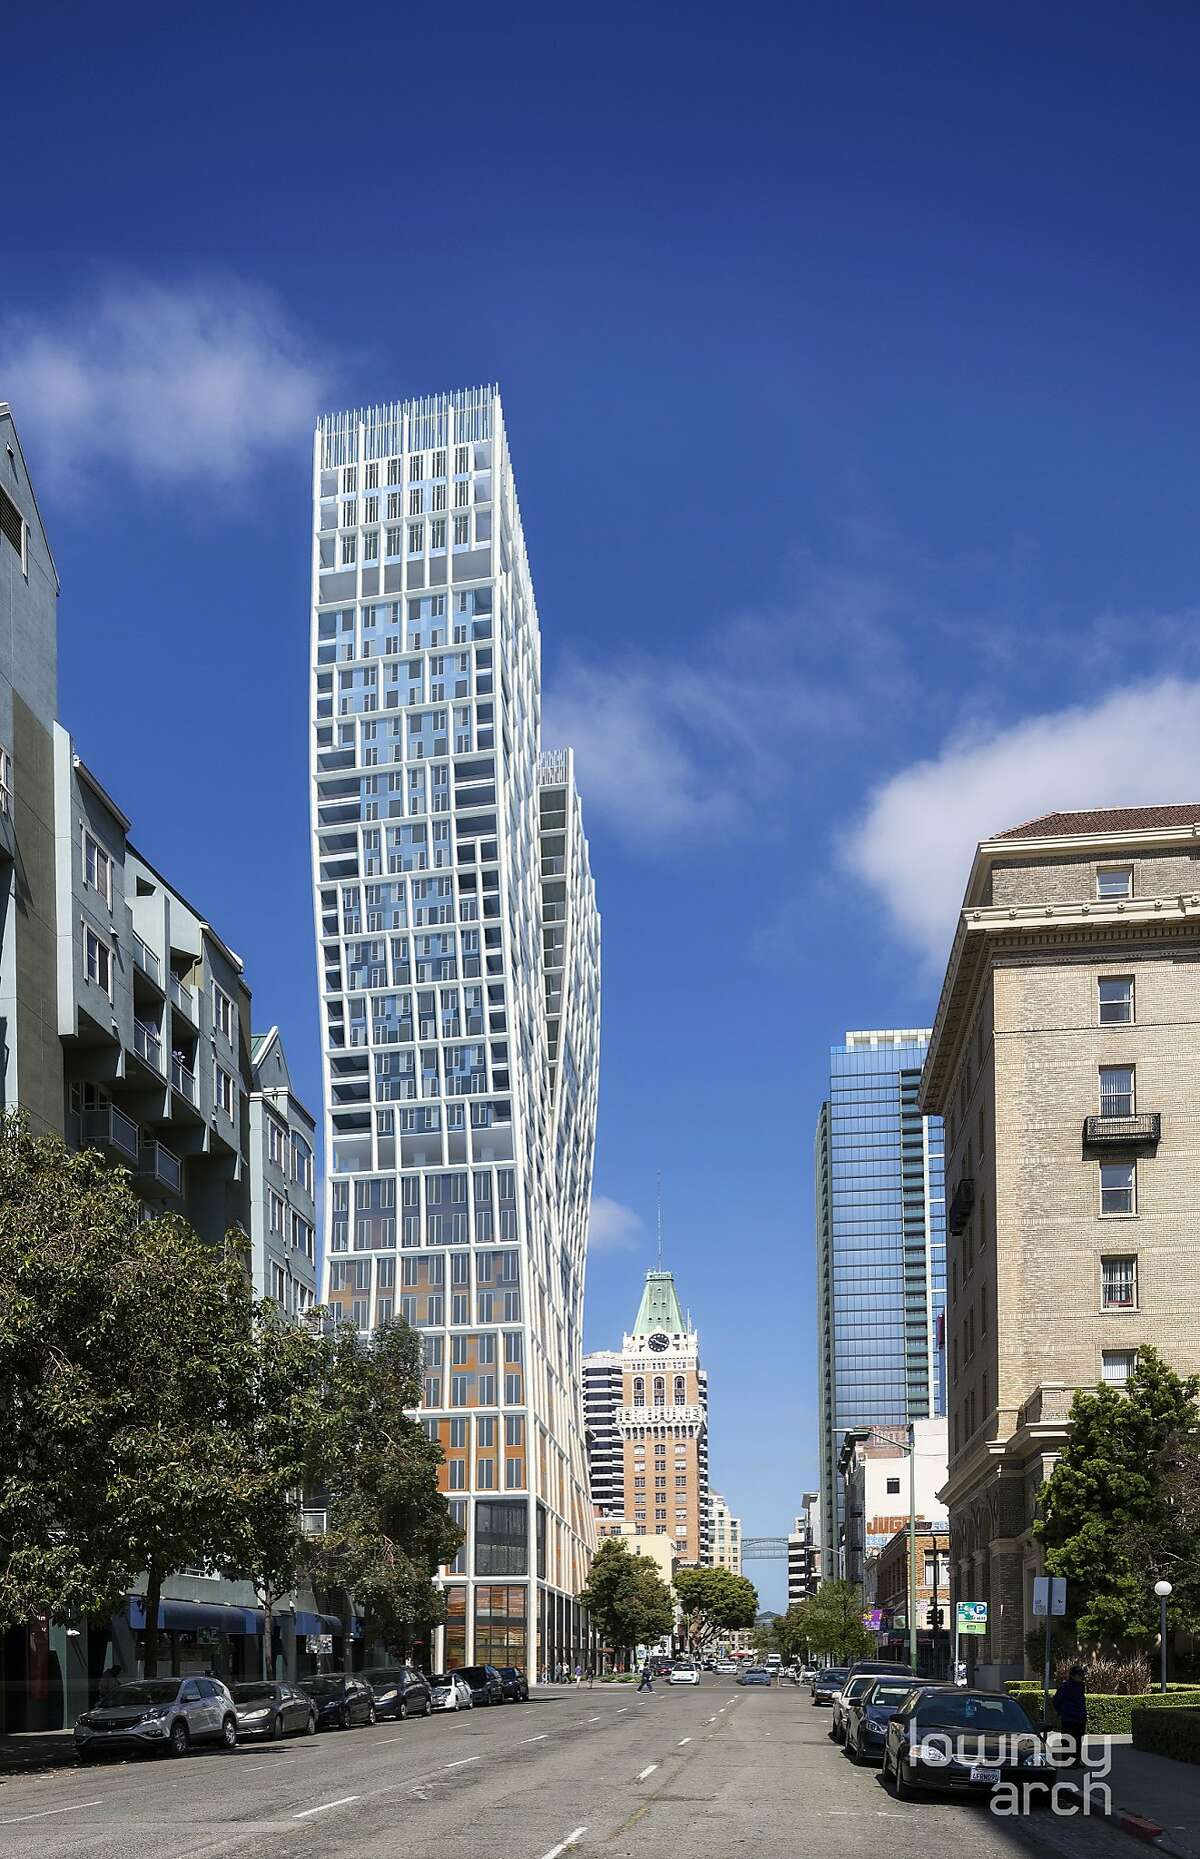 A rendering of 1261 Harrison St., a proposed 36-story, 460-foot tower for downtown Oakland. If approved and built, the high-rise would be the city's tallest building.